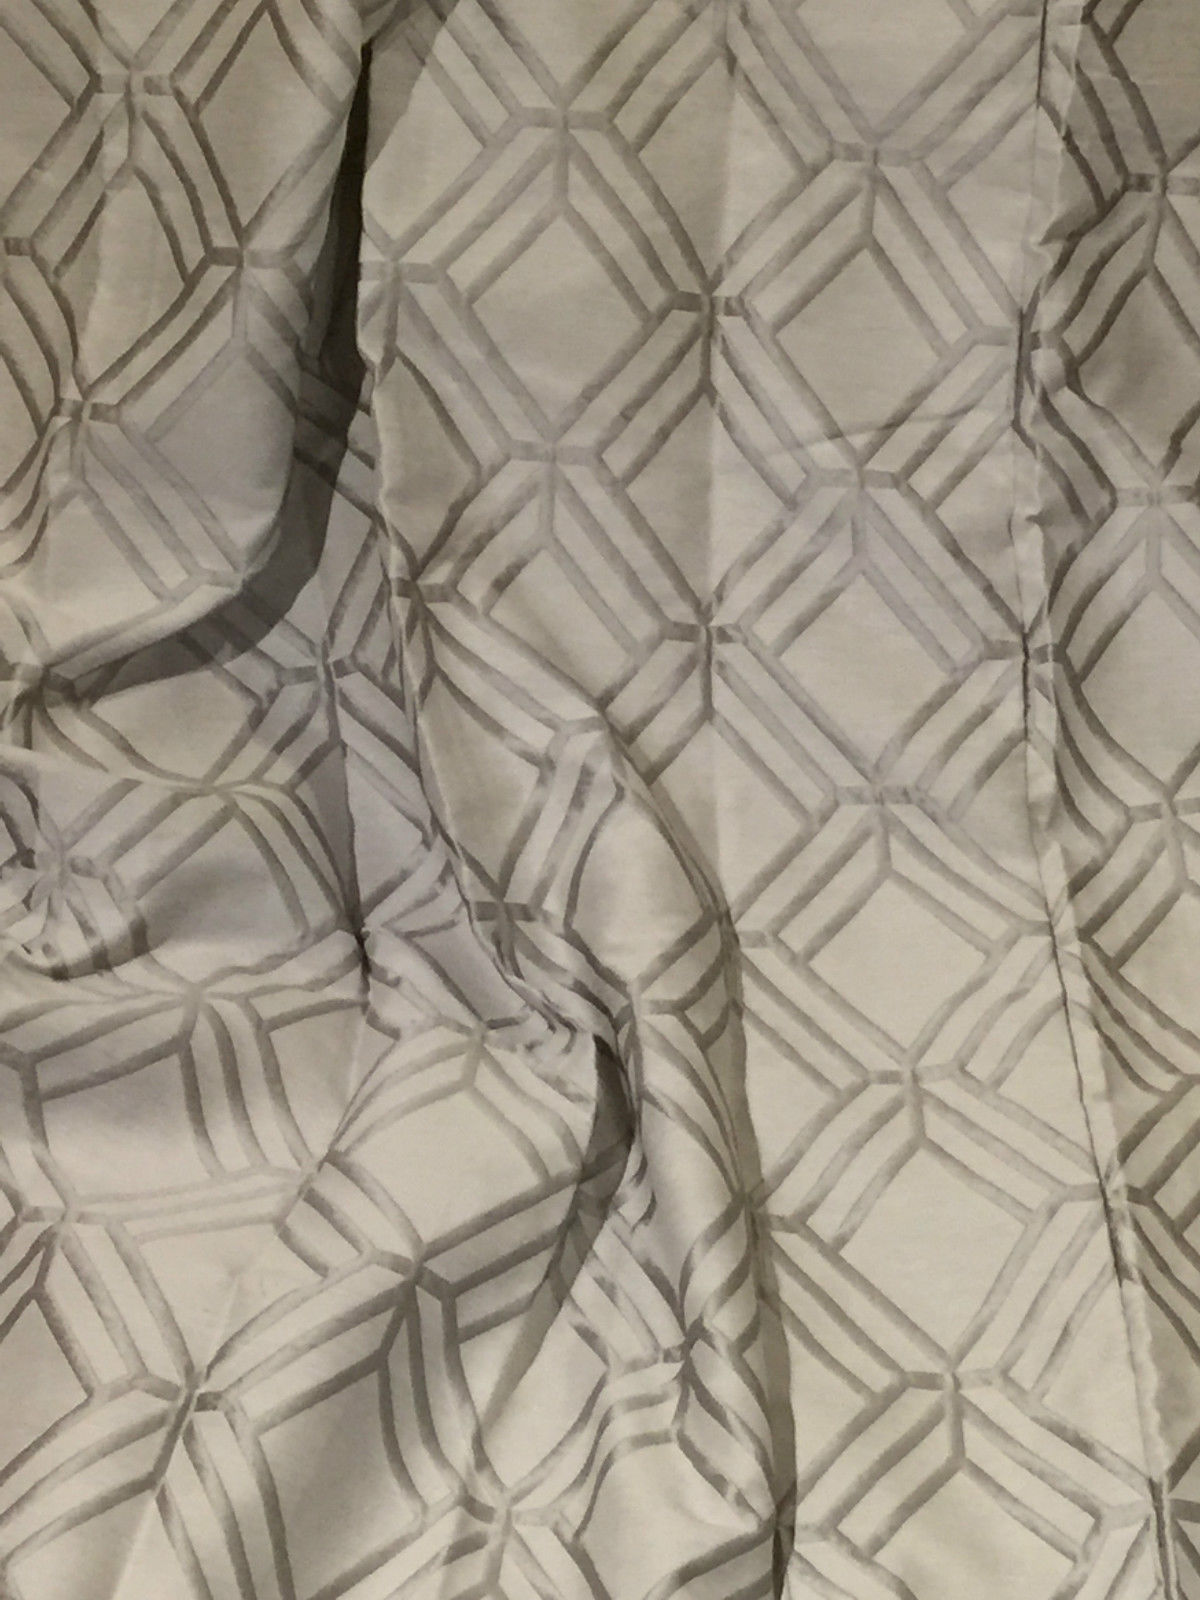 Silver Eyelet top Blackout Lined Hotel Curtains W195 D86